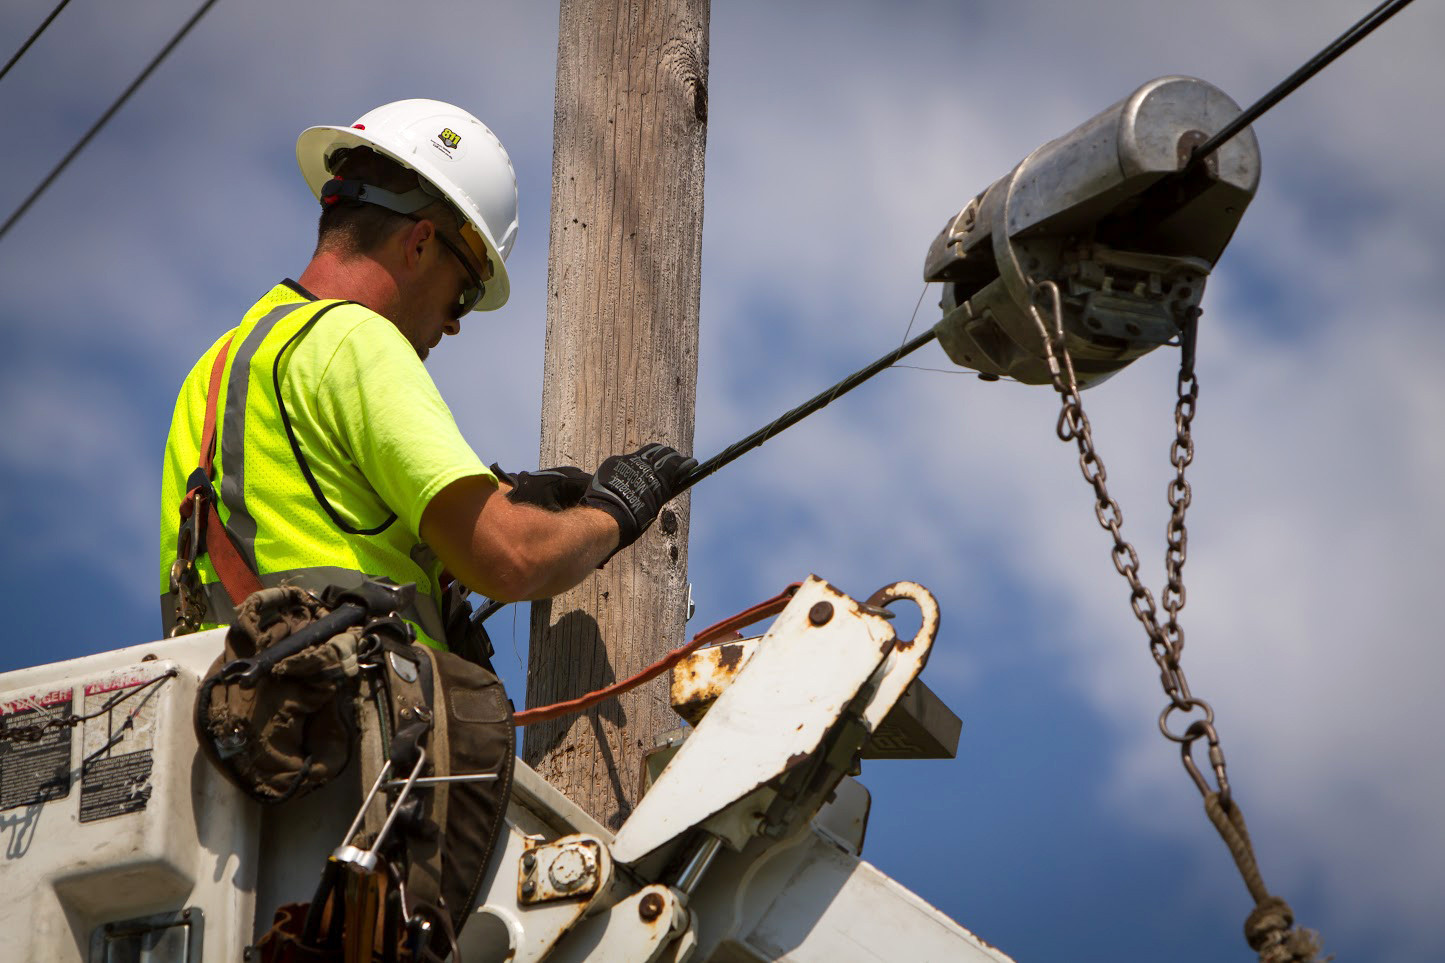 Man on telephone pole installing areial cabling